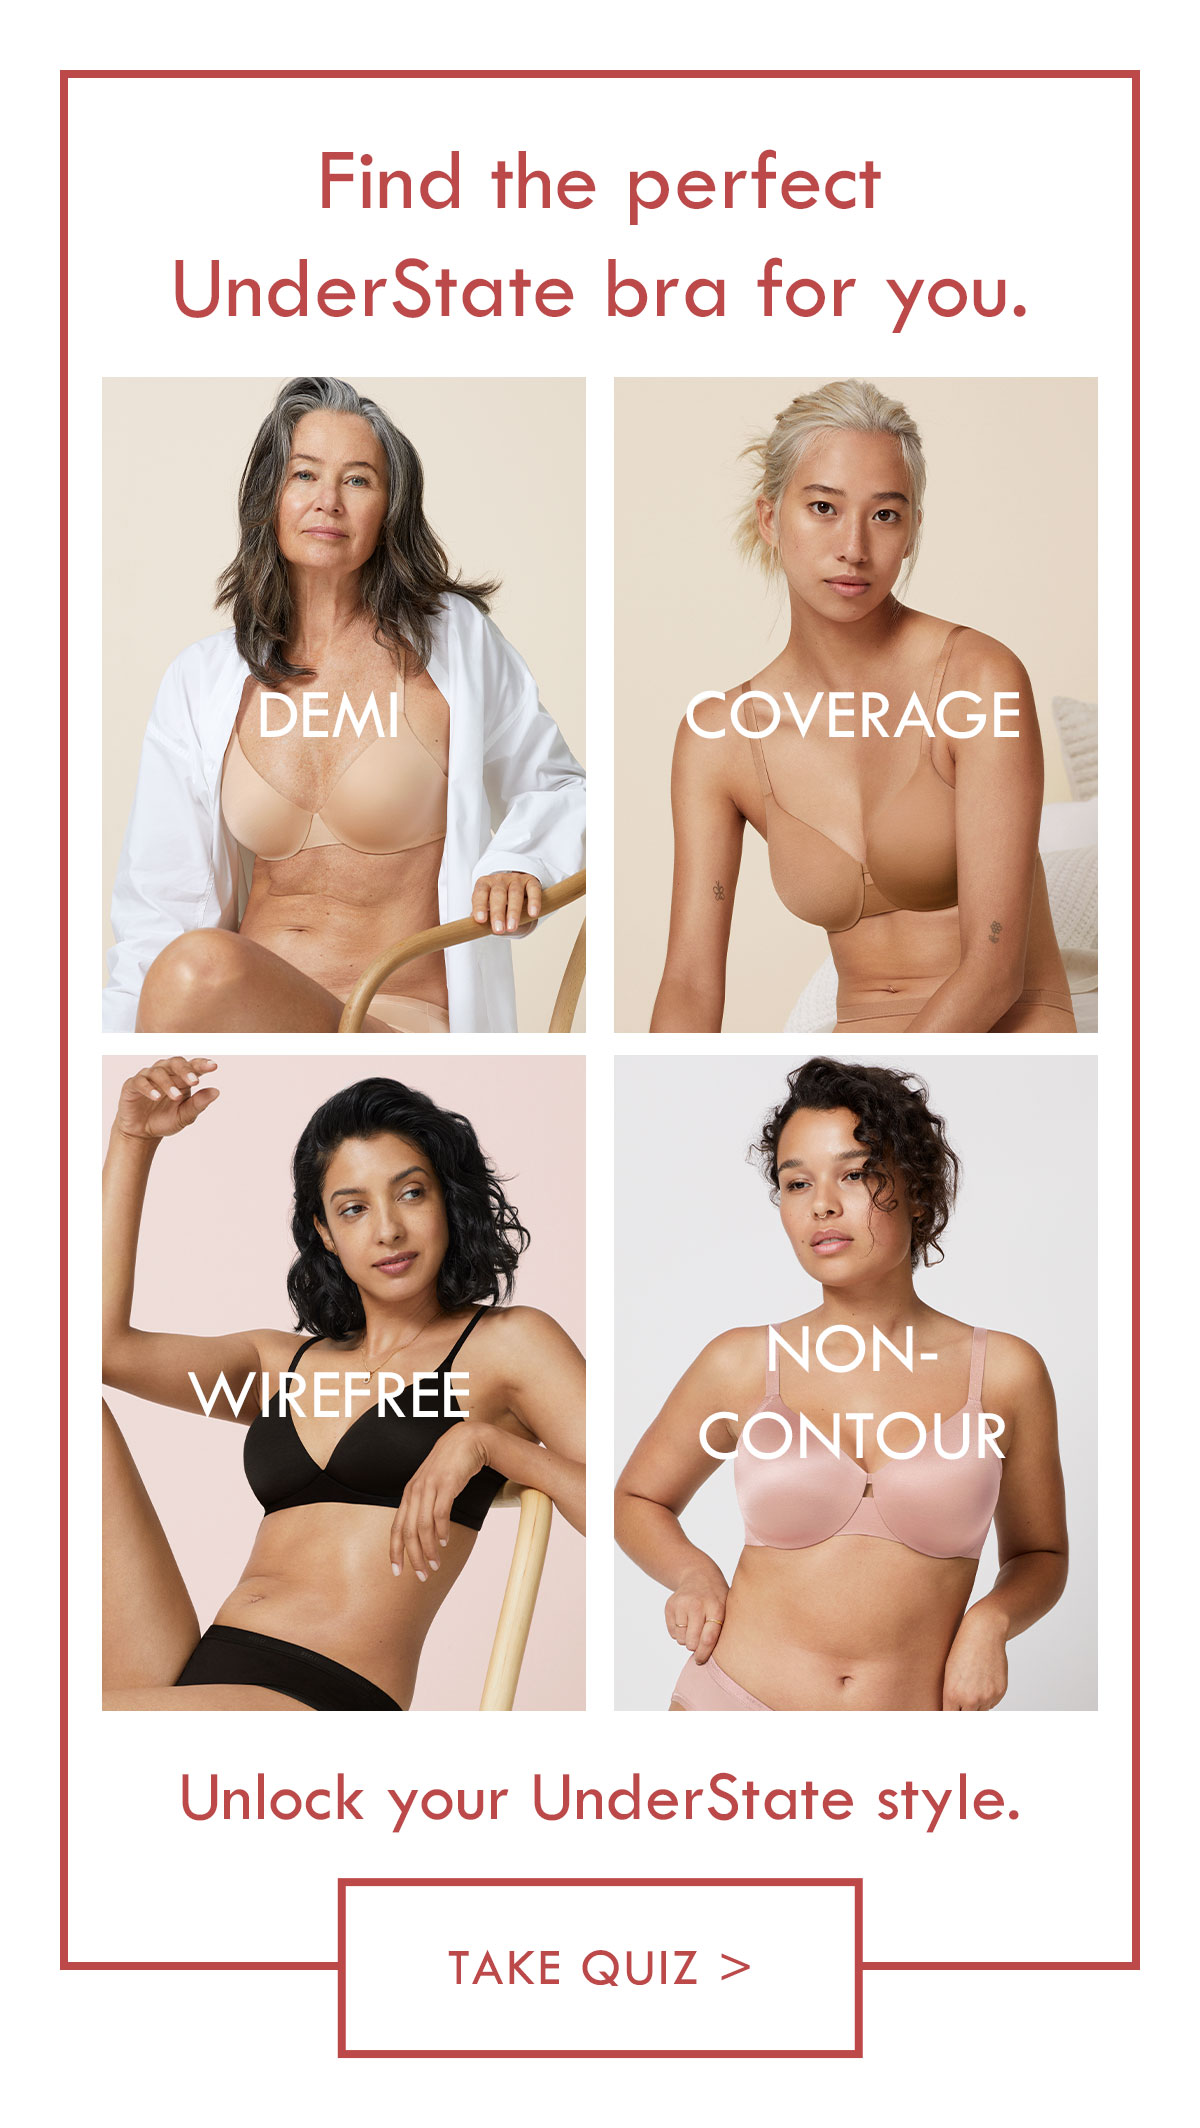 Find the perfect UnderState bra for you. Take quiz.